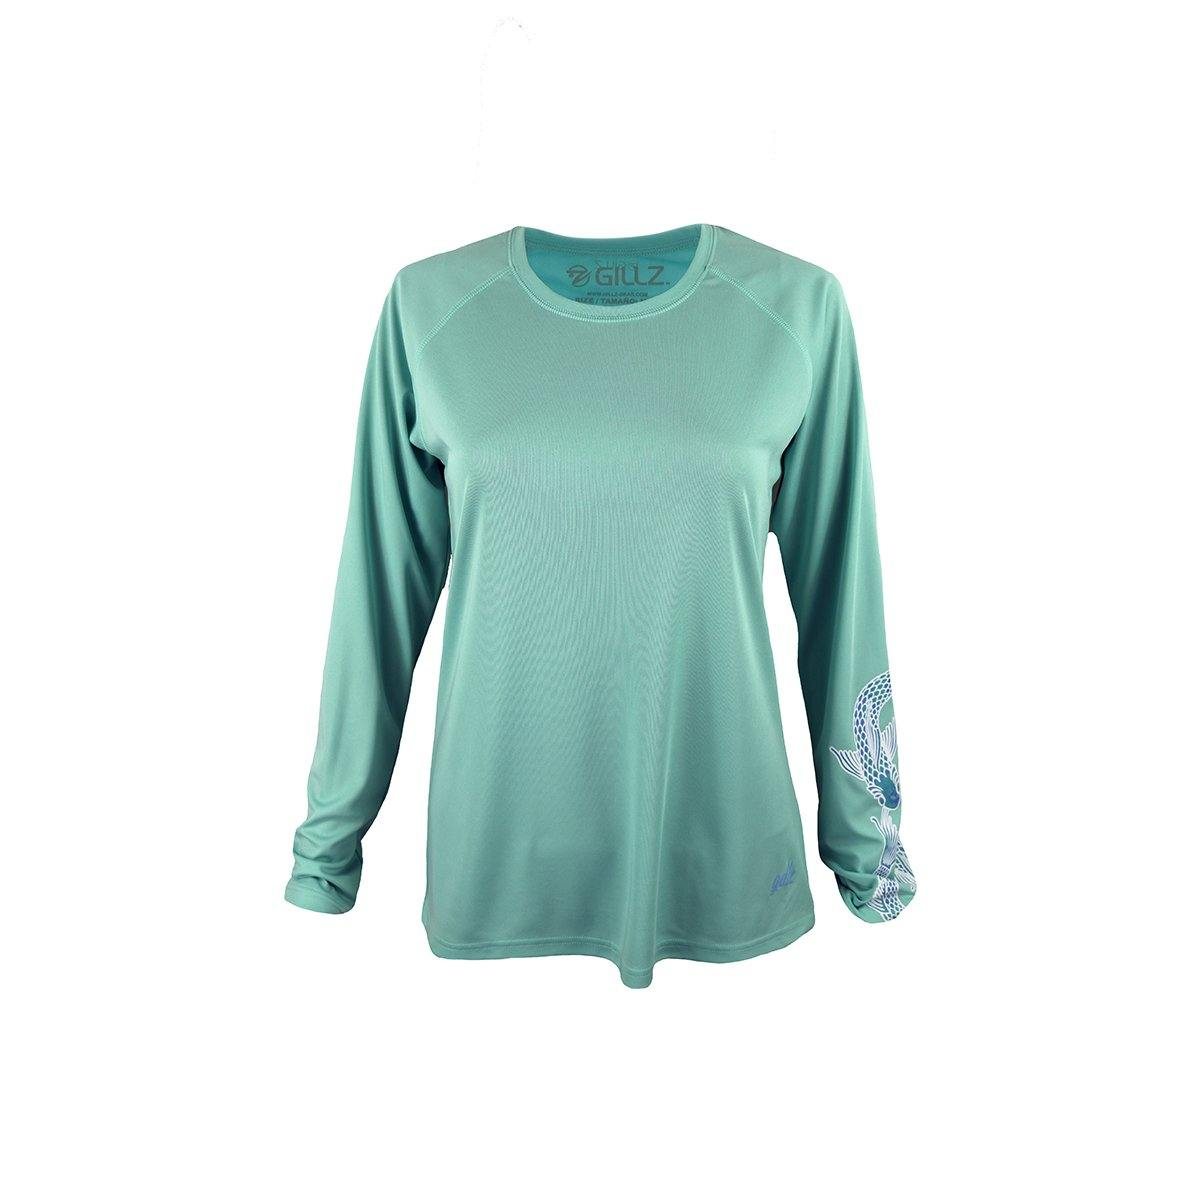 "Gillz Women's Long Sleeve UV ""Infinity Fish"""